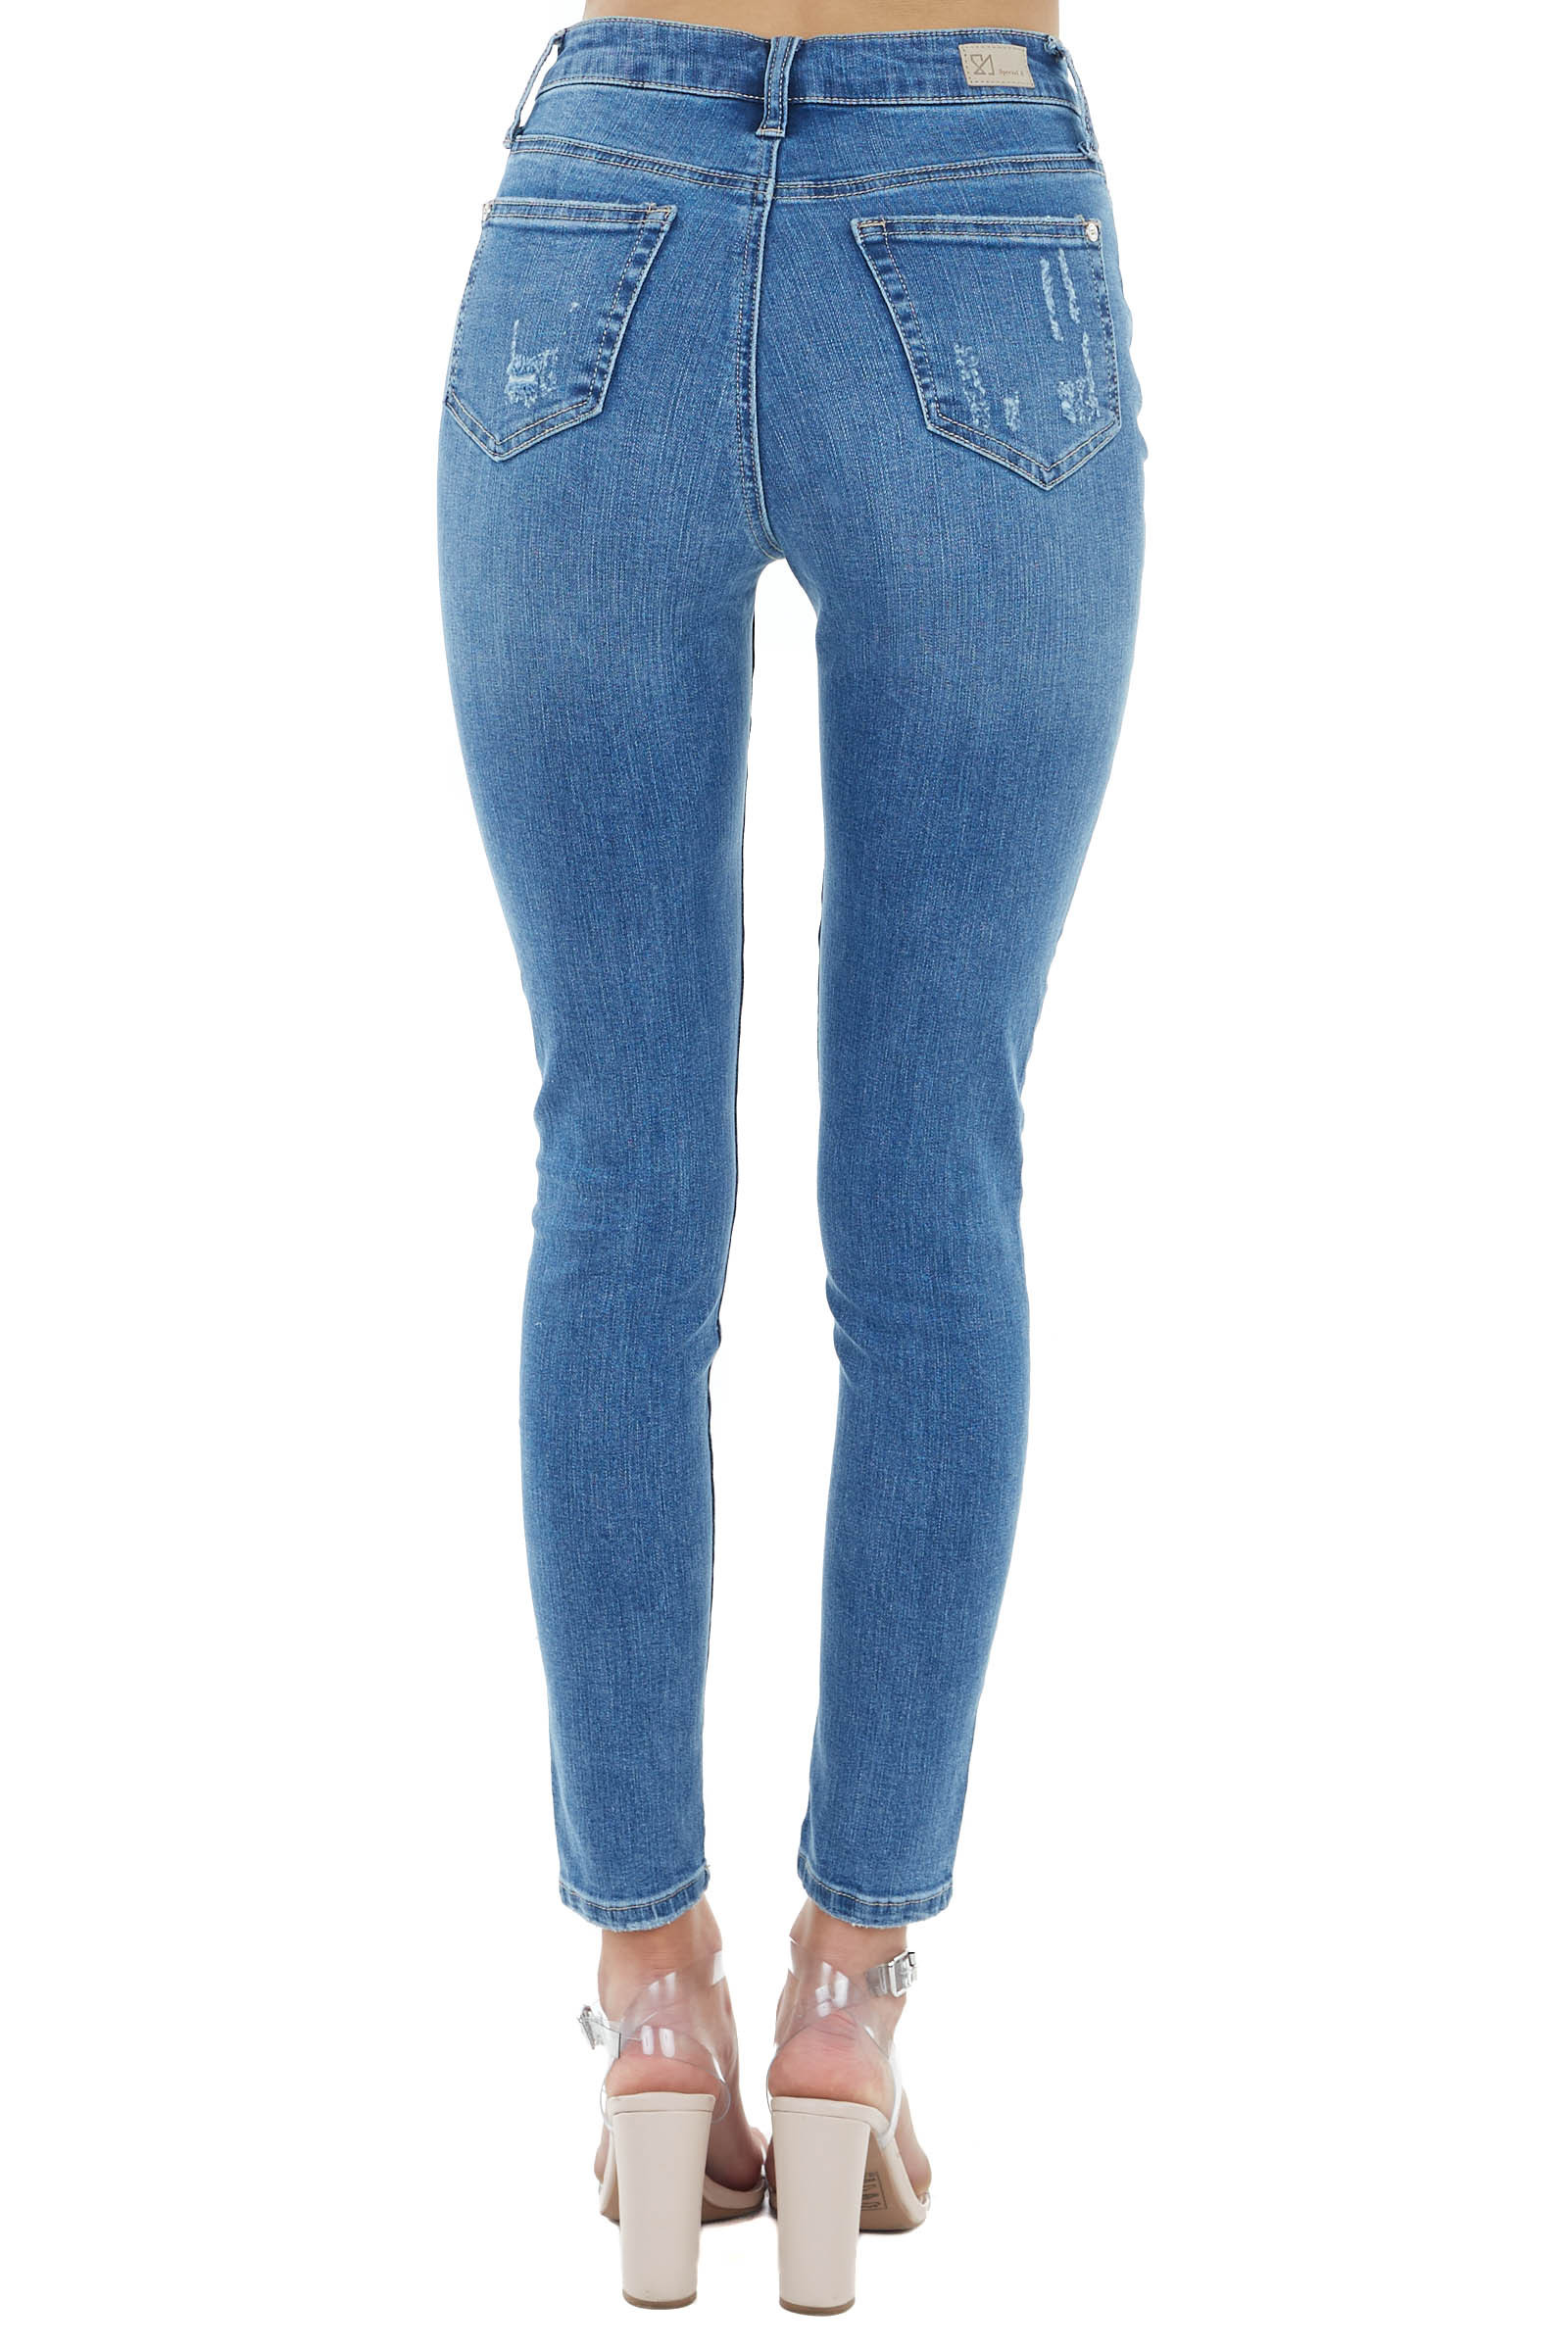 Medium Wash High Rise Skinny Jeans with Button Up Closure